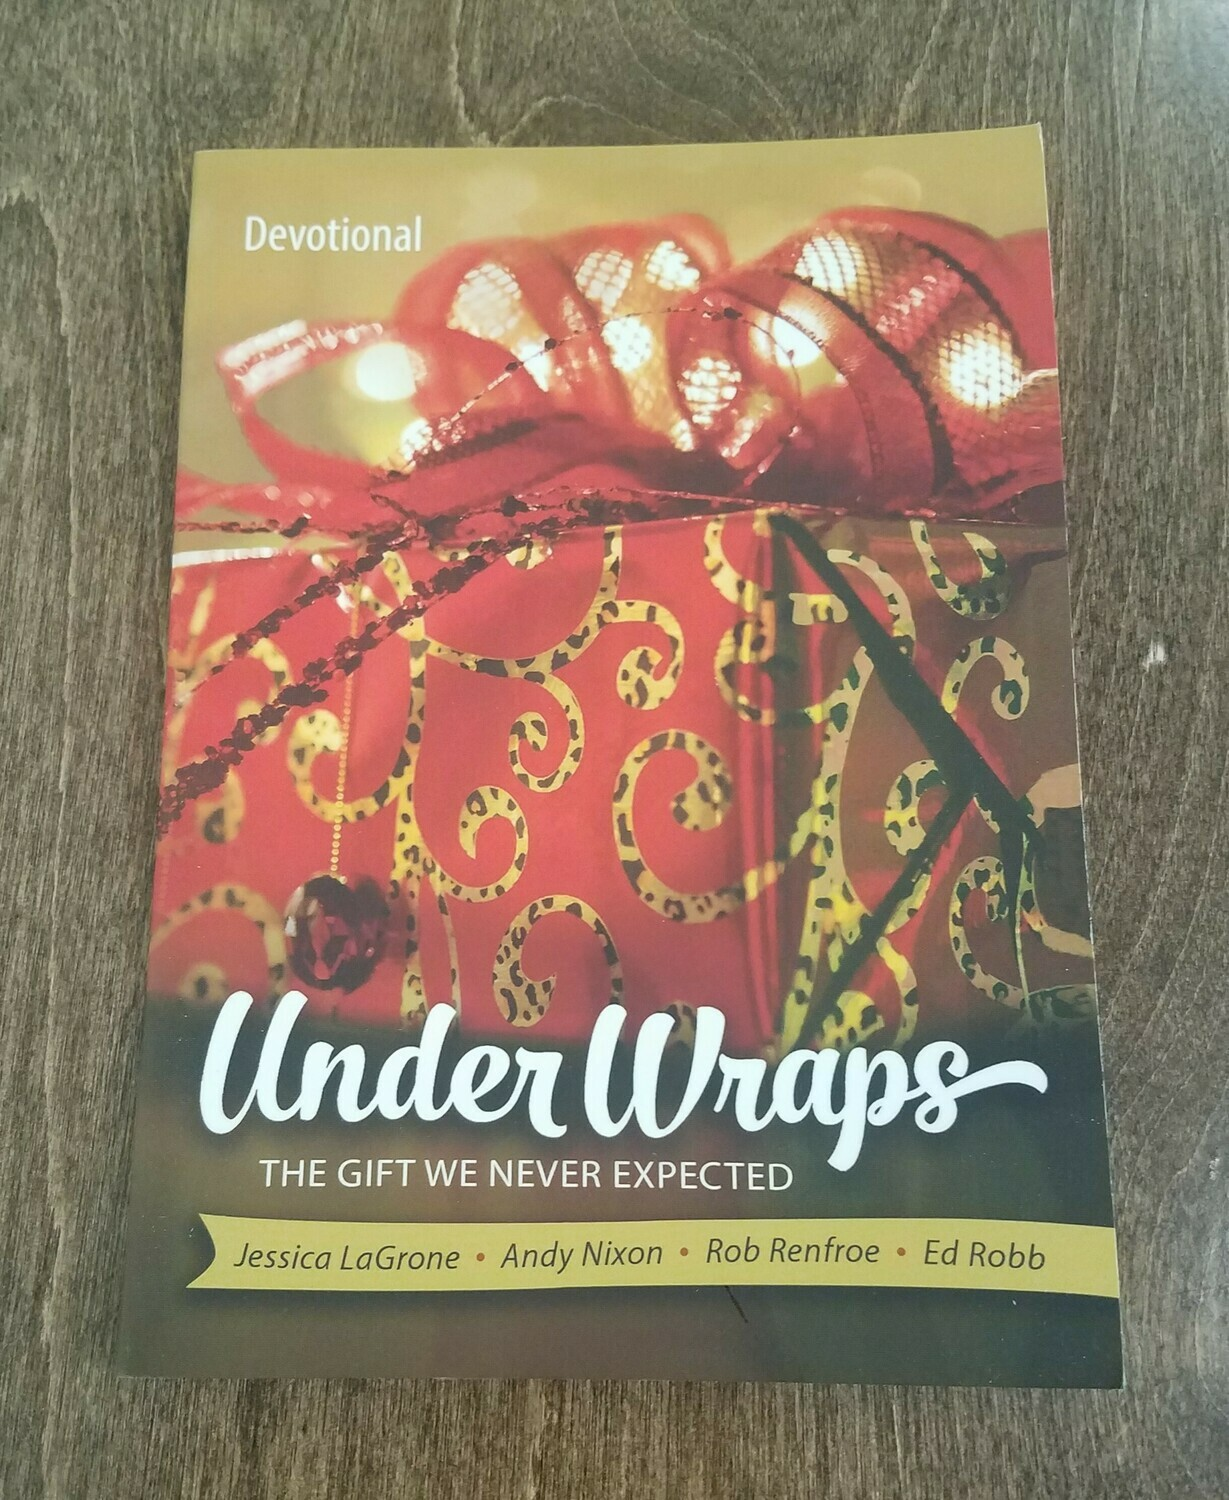 Under Wraps: The Gift We never Expected Devotional by Jessica LaGrone, Andy Nixon, Rob Renfroe, and Ed Robb